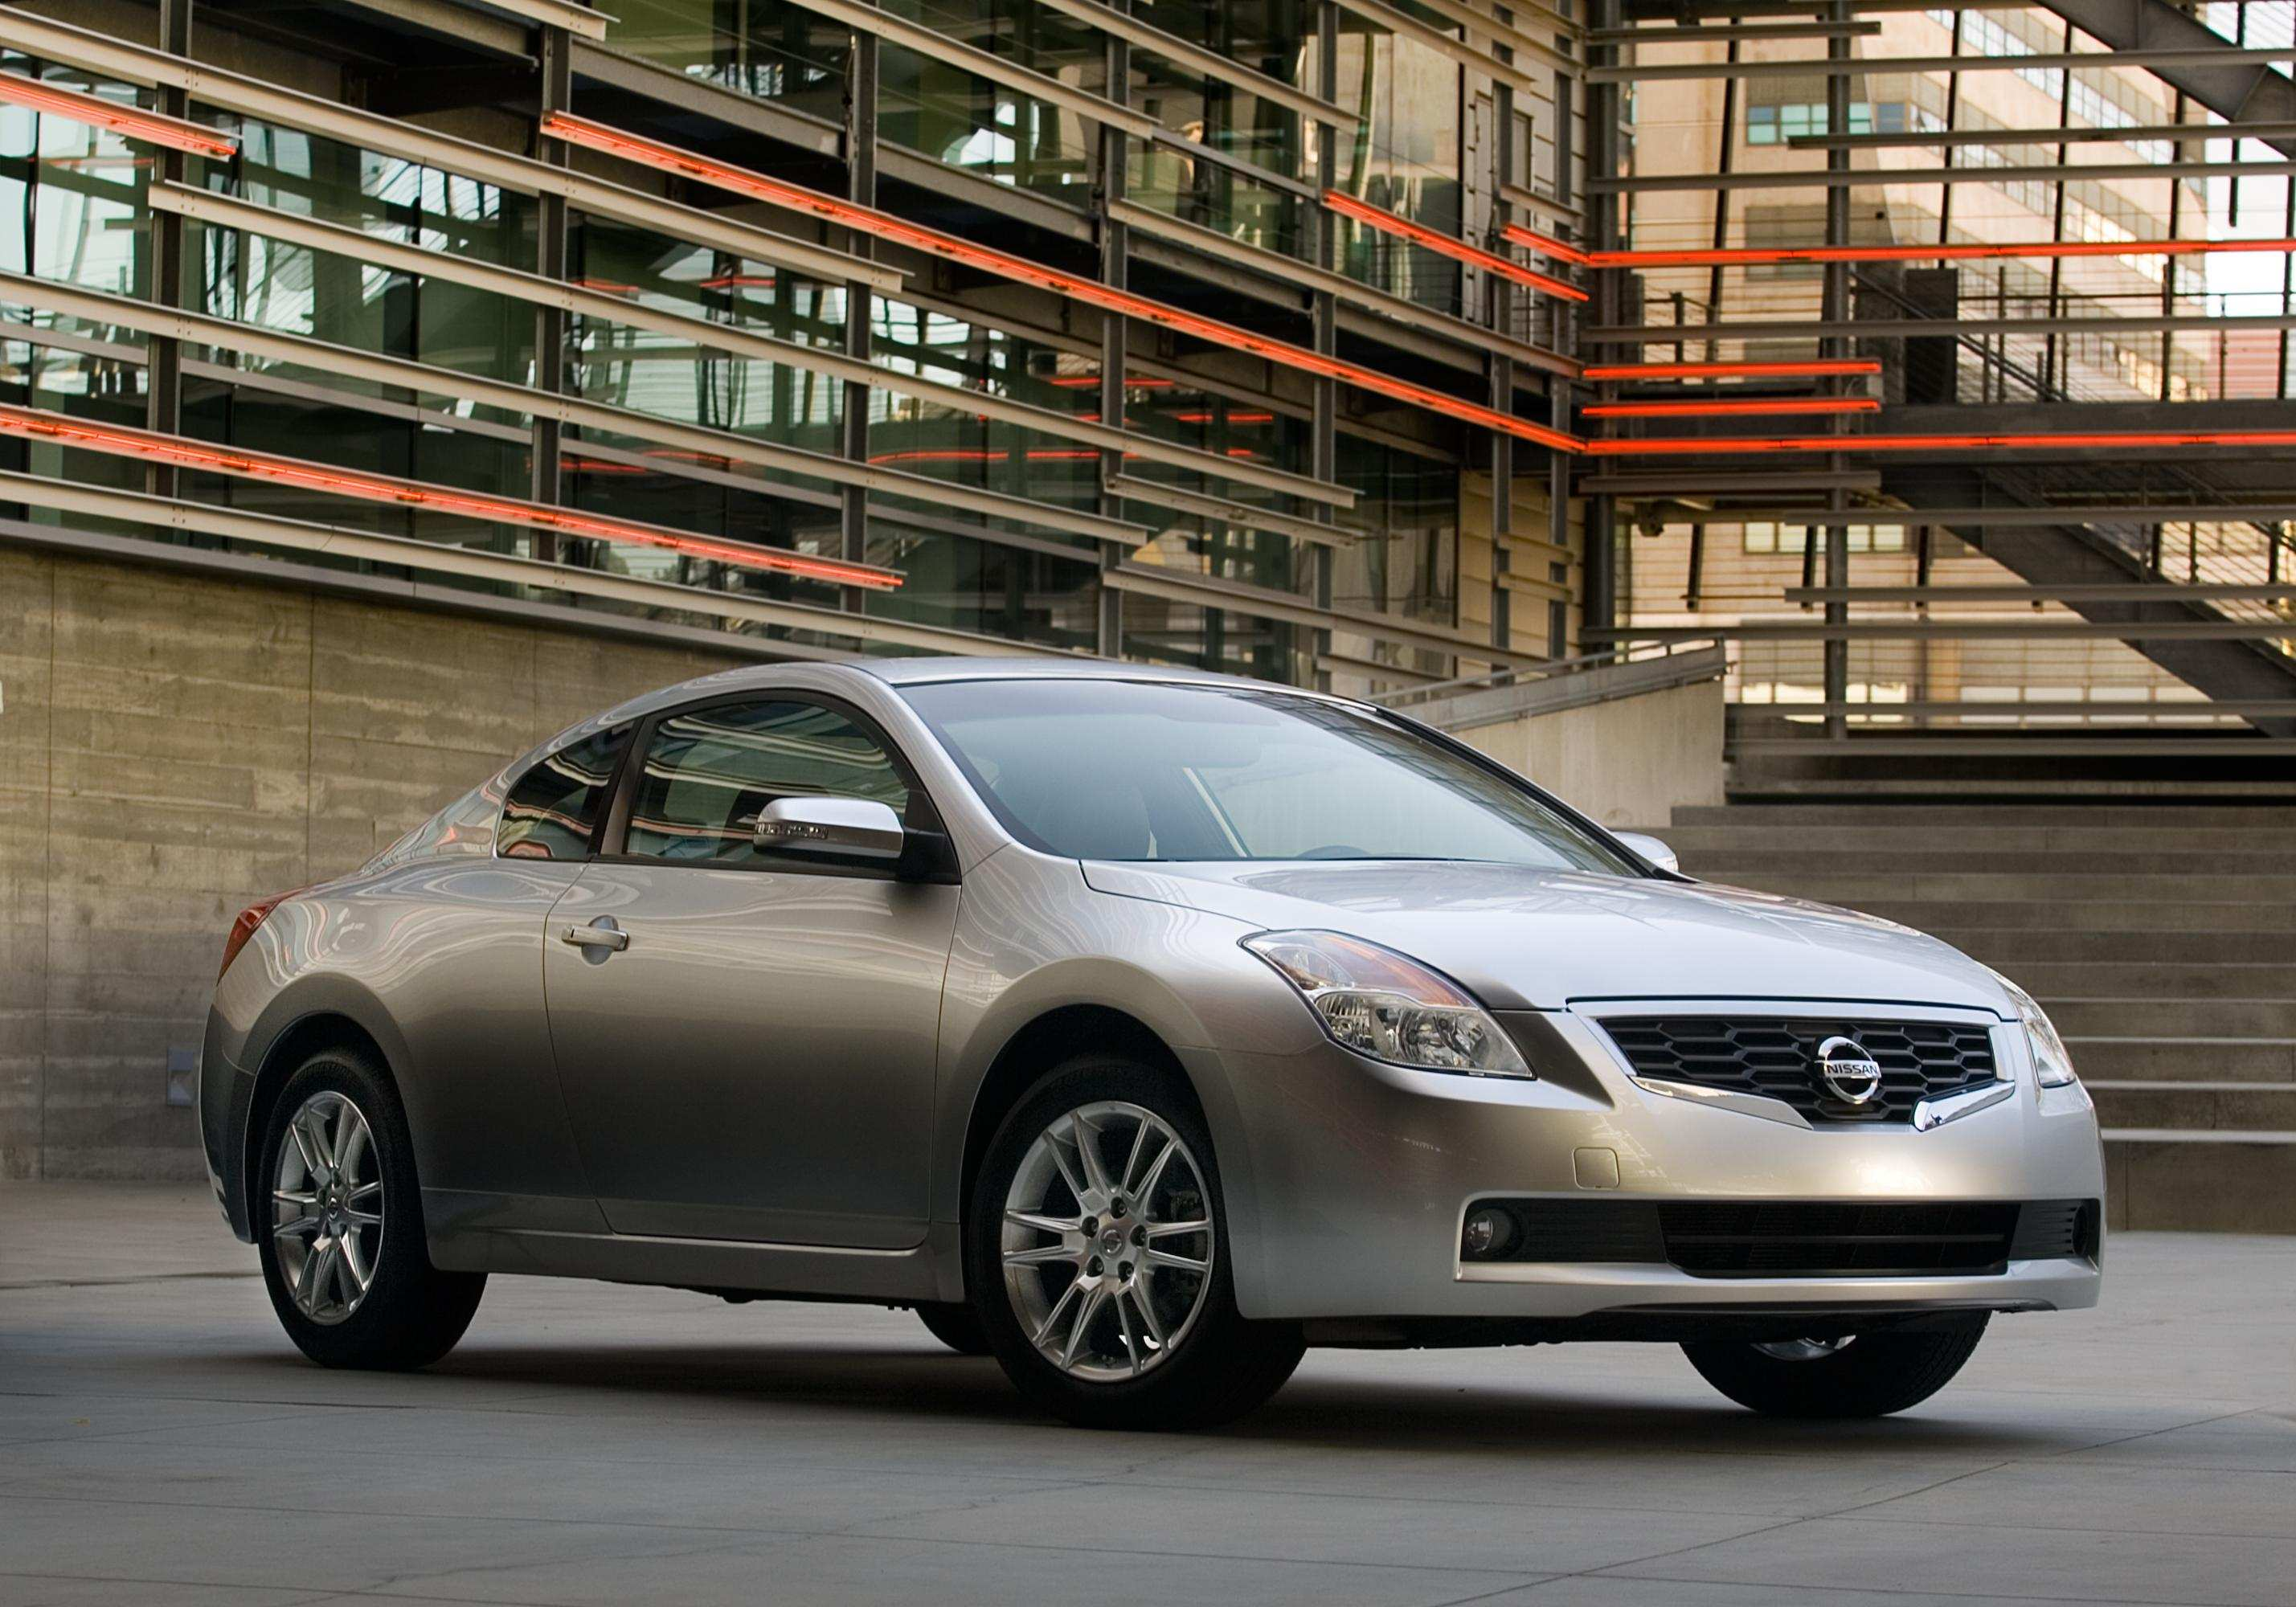 15 A Nissan Altima Coupe 2008 Specs And Review